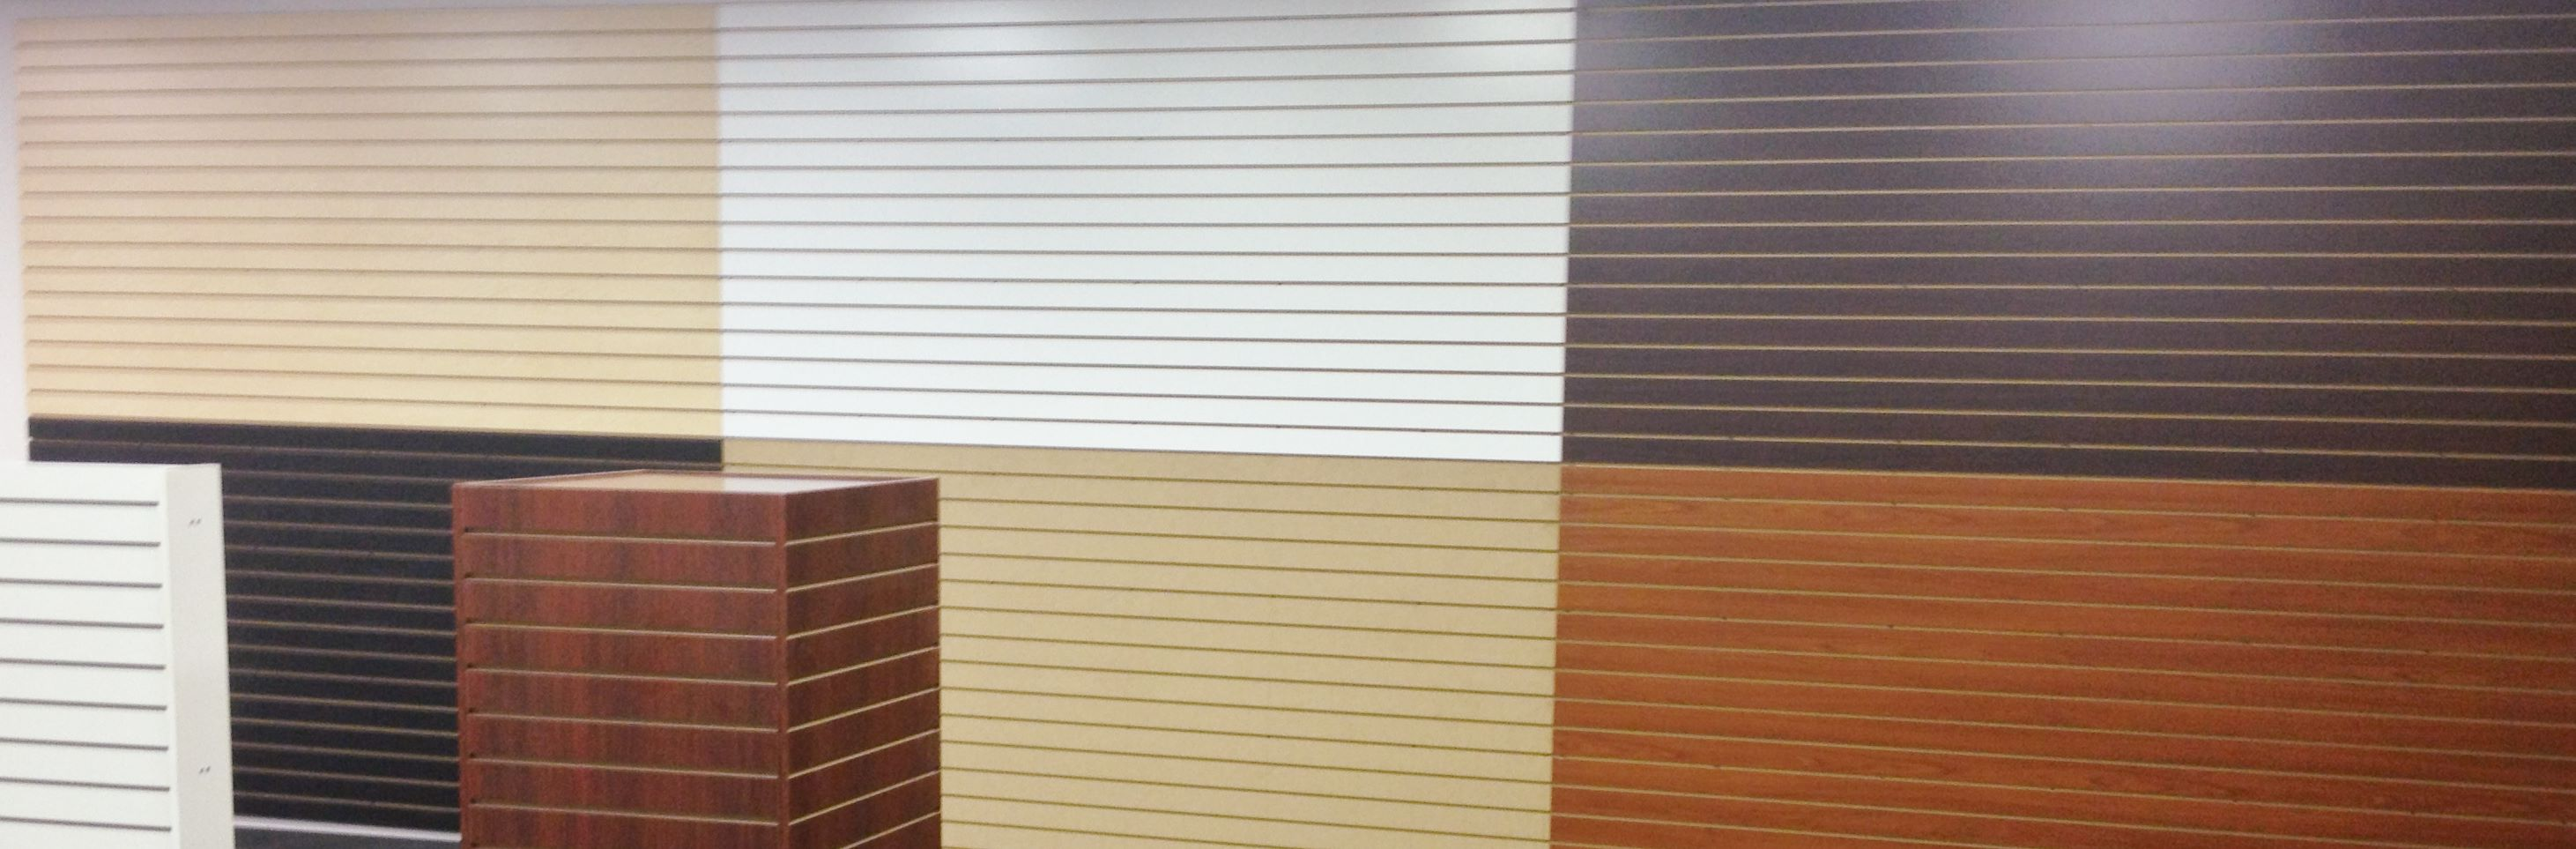 Slat Walls Slatwall Accessories Slatwall Displays